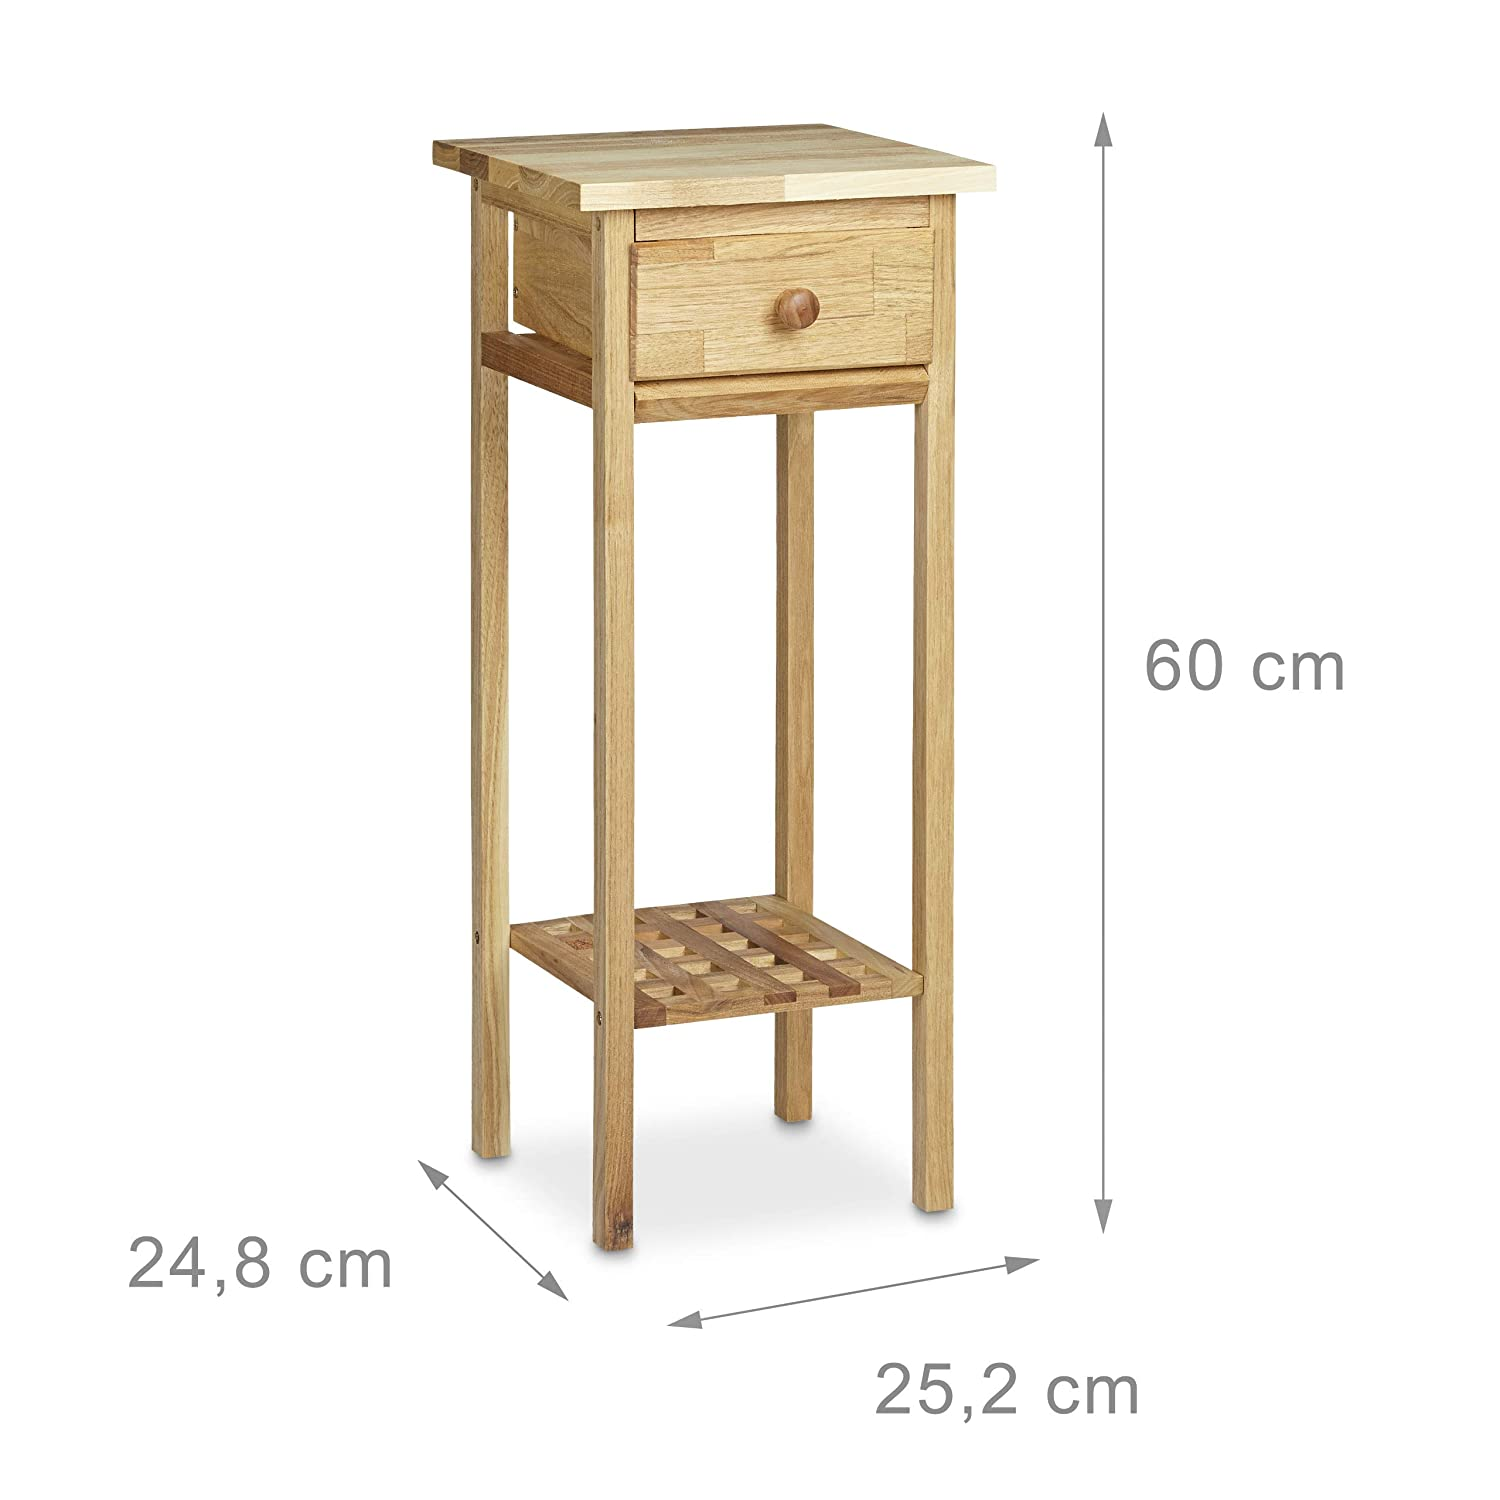 Smalle Sidetable 25 Cm.Relaxdays Walnut Telephone Table 60 X 25 X 25 Cm Side Table End Table With Drawer Console Table Wooden Plant Stand 60 Cm Tall Flower Table Natural